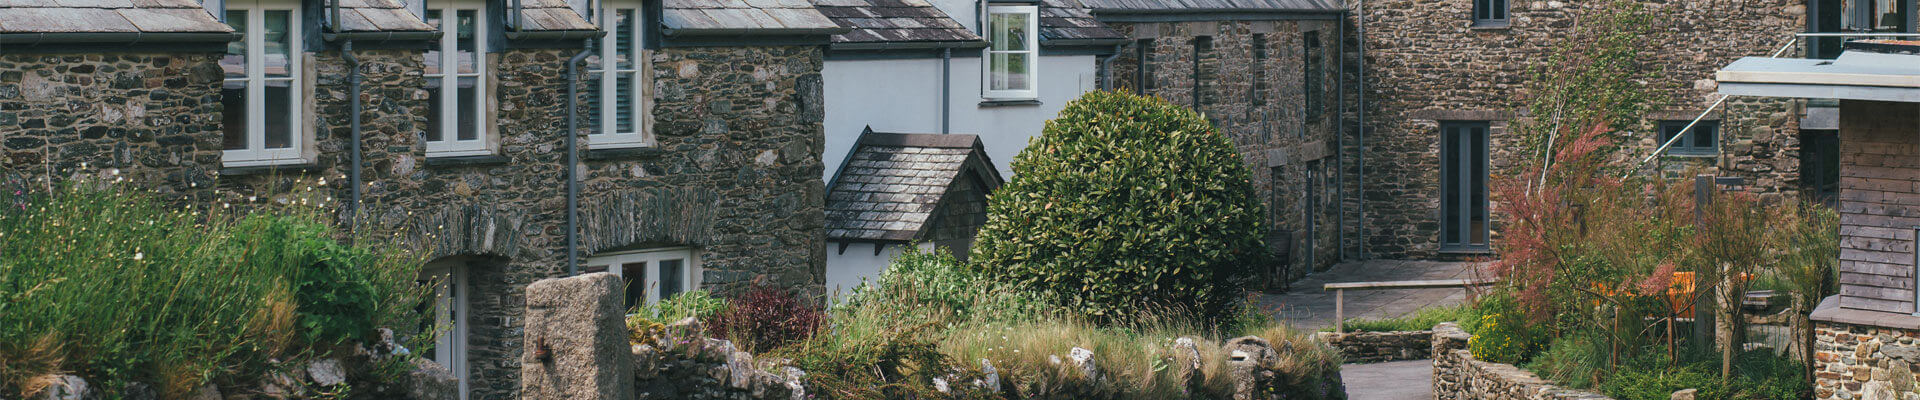 Photo of Tregulland Cottage